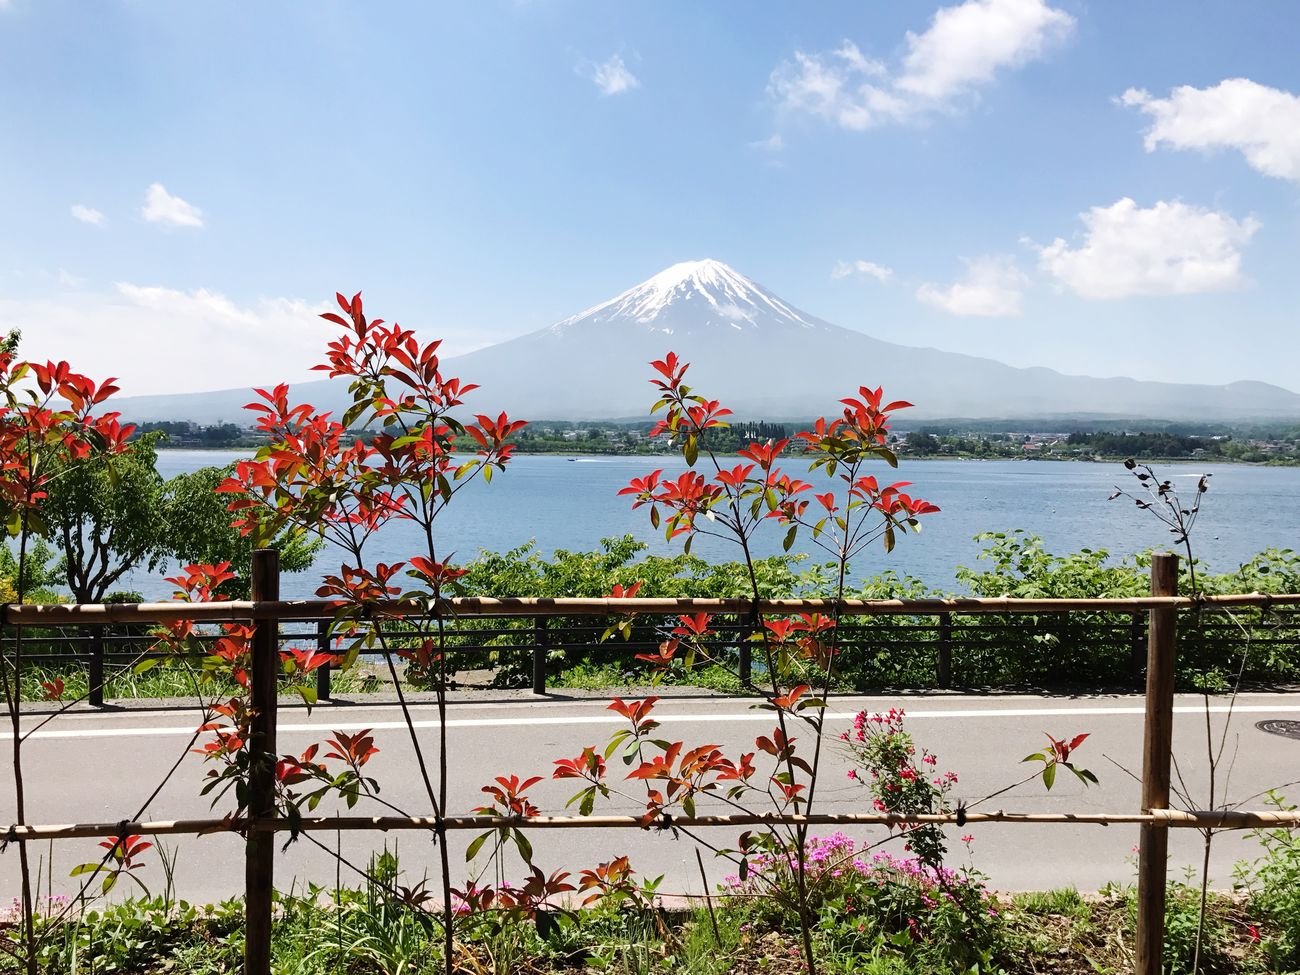 Beauty In Nature Nature Mountain Sky Scenics Growth Day Flower Tranquility Water Cloud - Sky No People Outdoors Plant Tranquil Scene Mountain Range Lake Tree Japan Japan Photography JapanLife Mt.Fuji Sunny Day Fujikawaguchiko